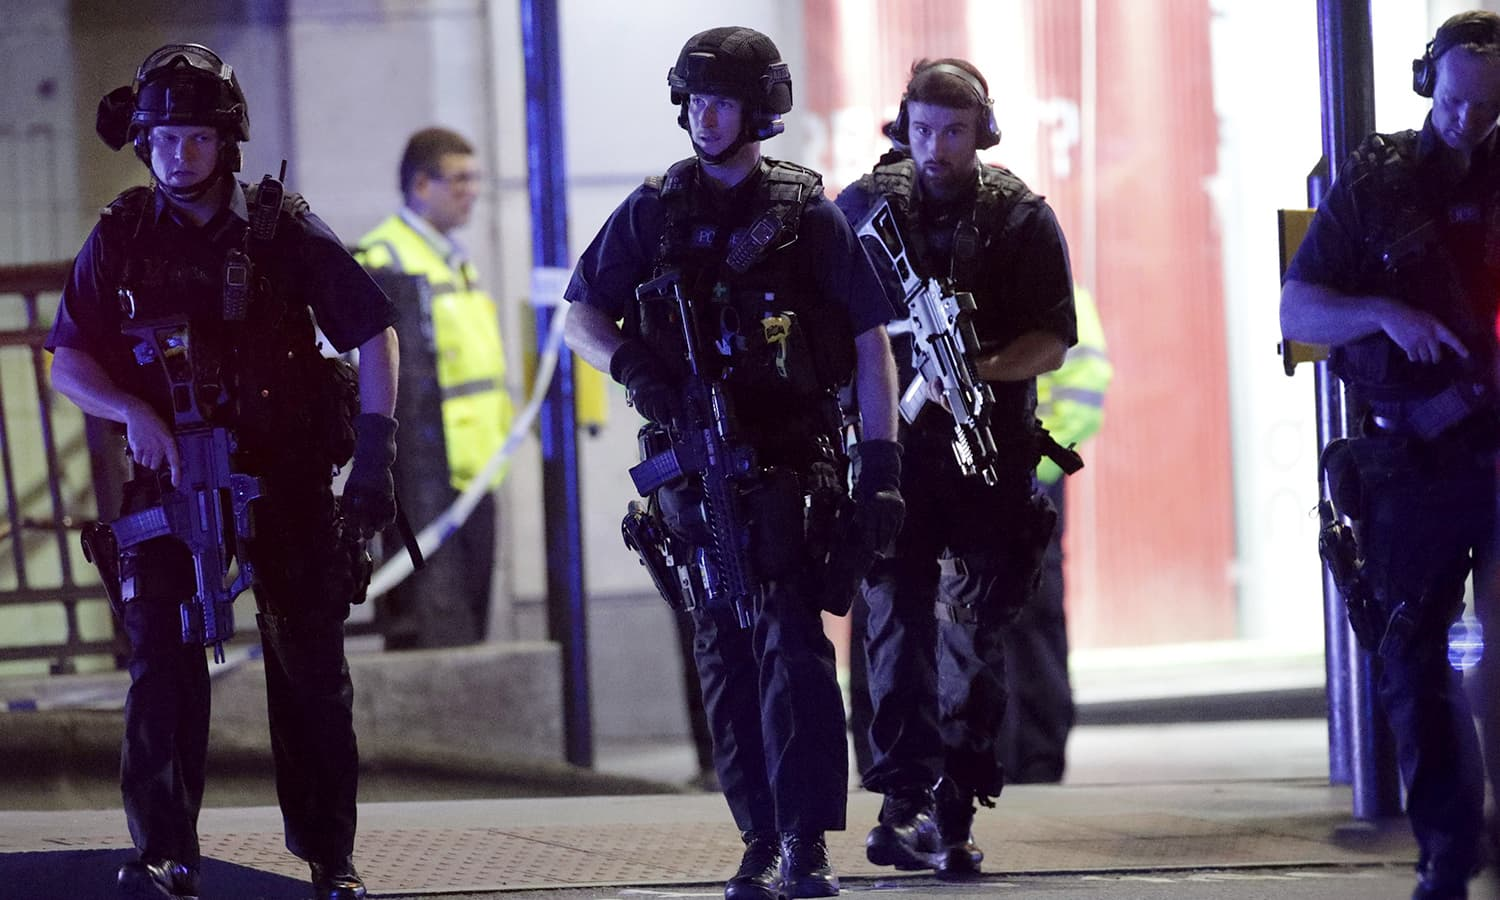 Armed police outside Monument station after an incident in central London.─AP